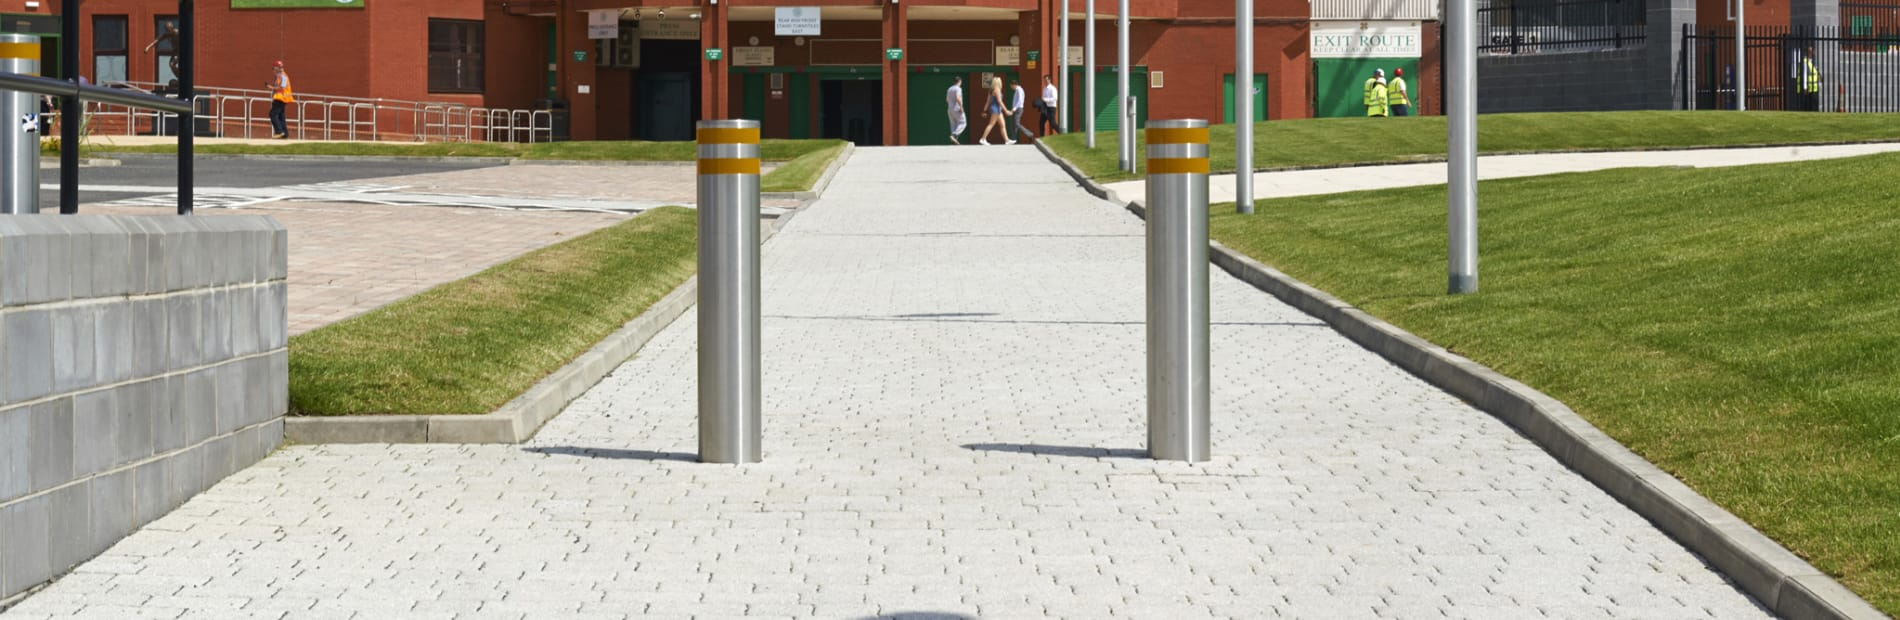 rhinoguard bollards outside a stadium